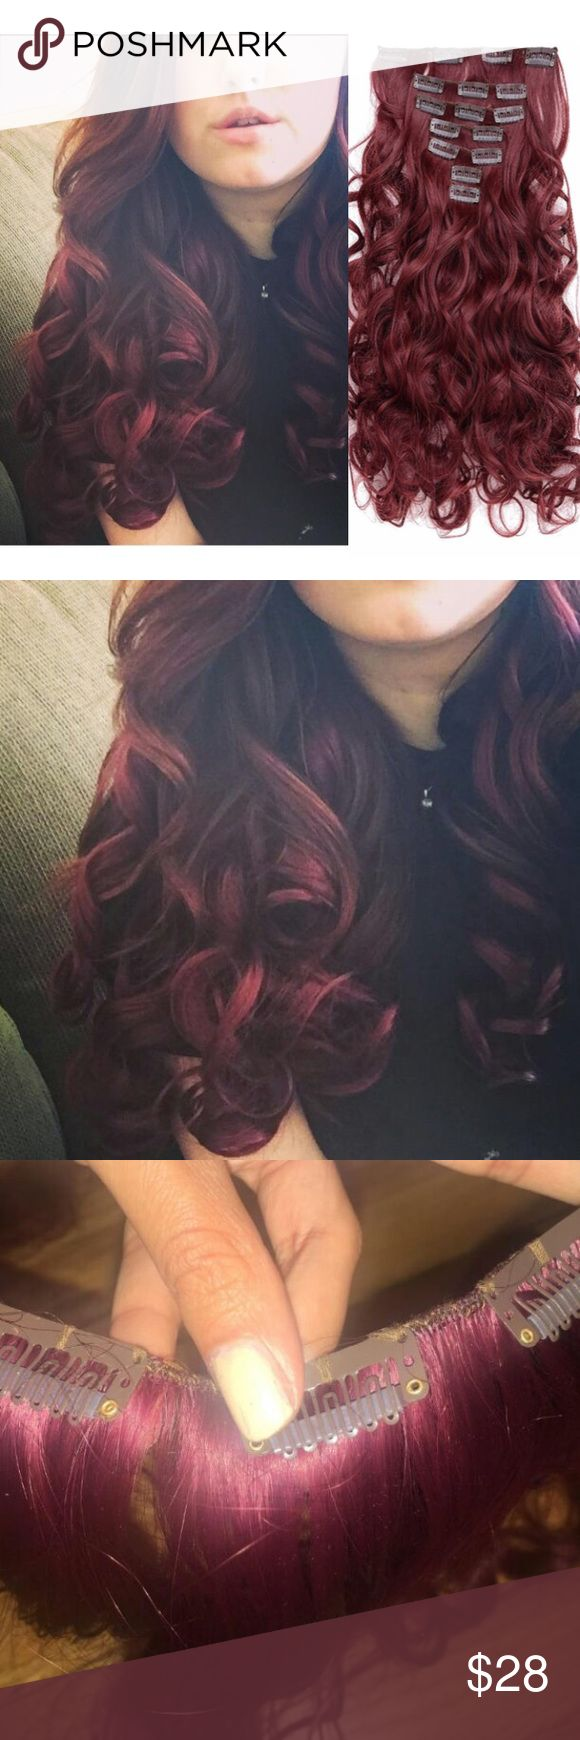 "Wine Red Clip ins 20"" Curly Full Head Clip in Synthetic Hair Extensions  7pcs 140g  Wine Red Accessories Hair Accessories"